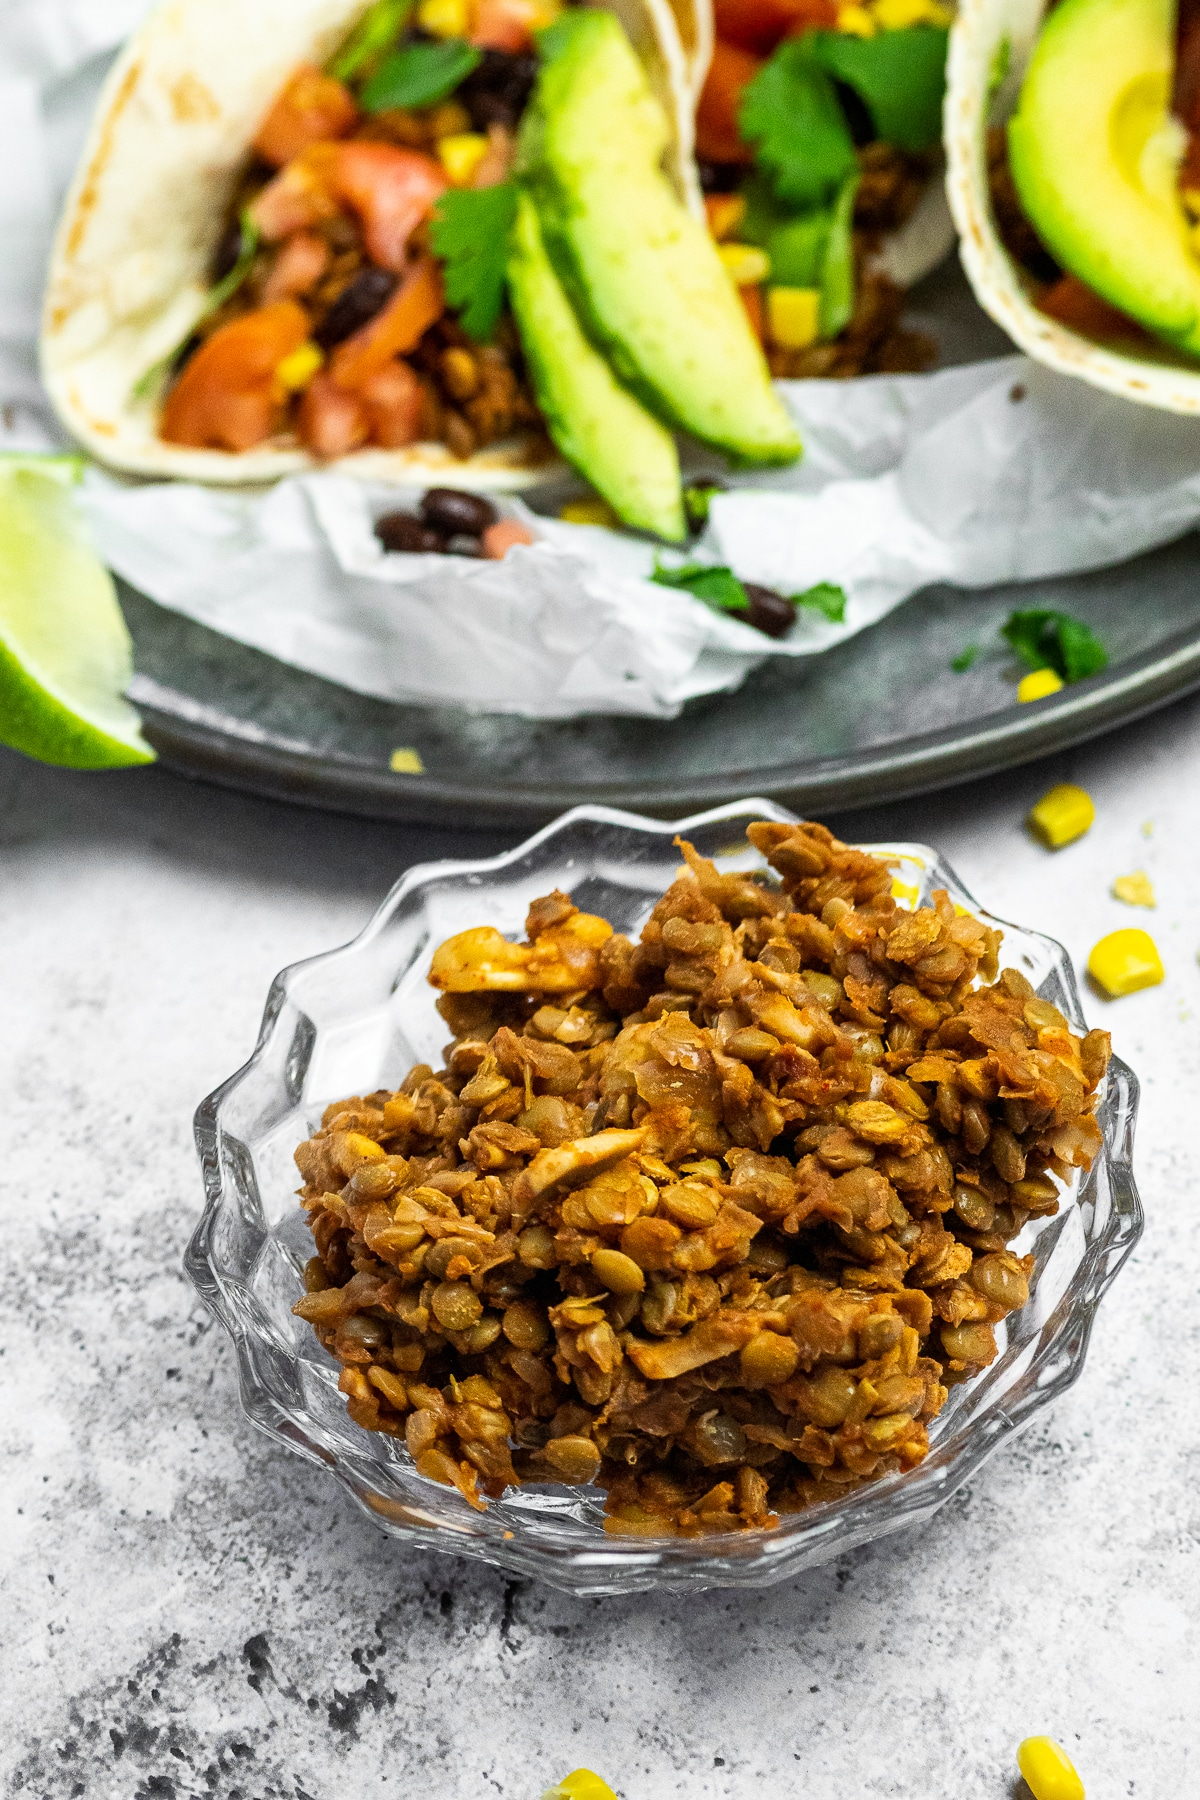 Vegan Taco Meat in a bowl with tacos in the background blurred.